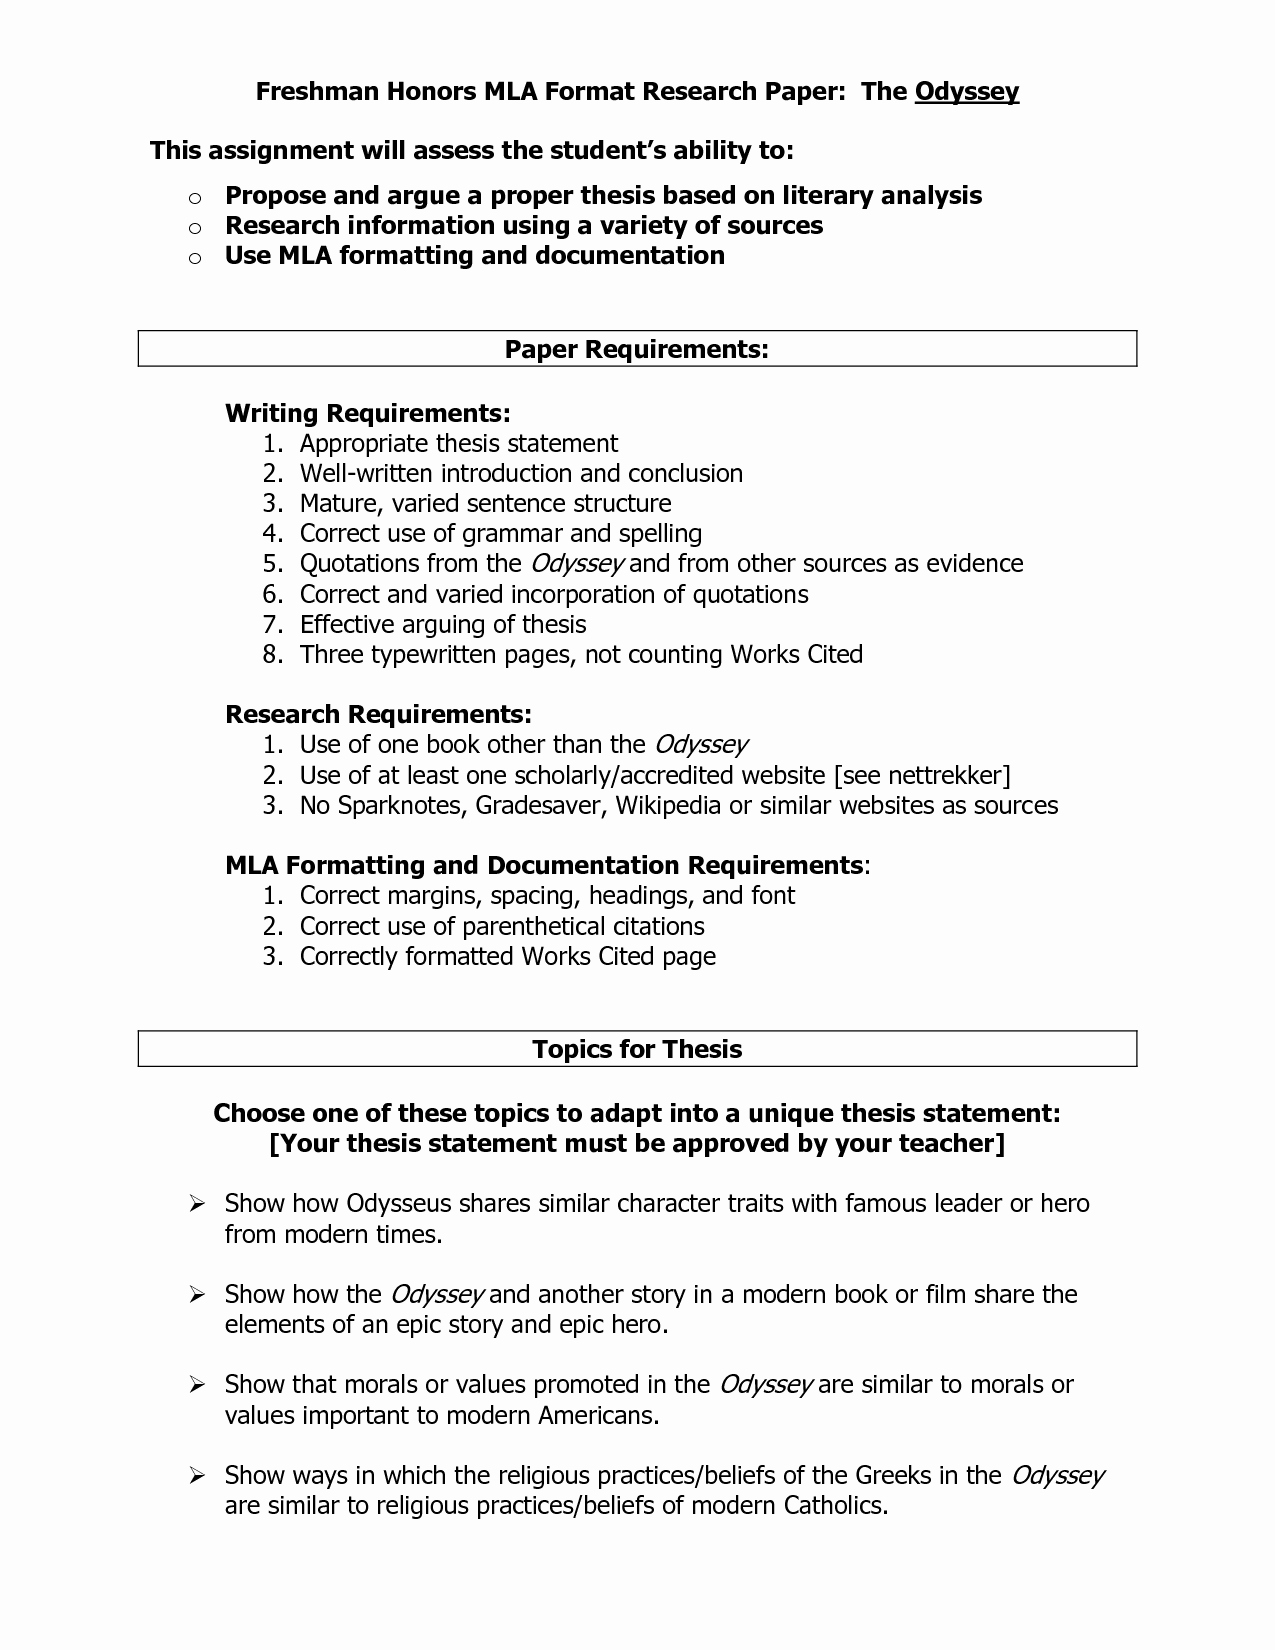 Mla format Research Paper Template Lovely History Essay and Research Papers Cool Essay